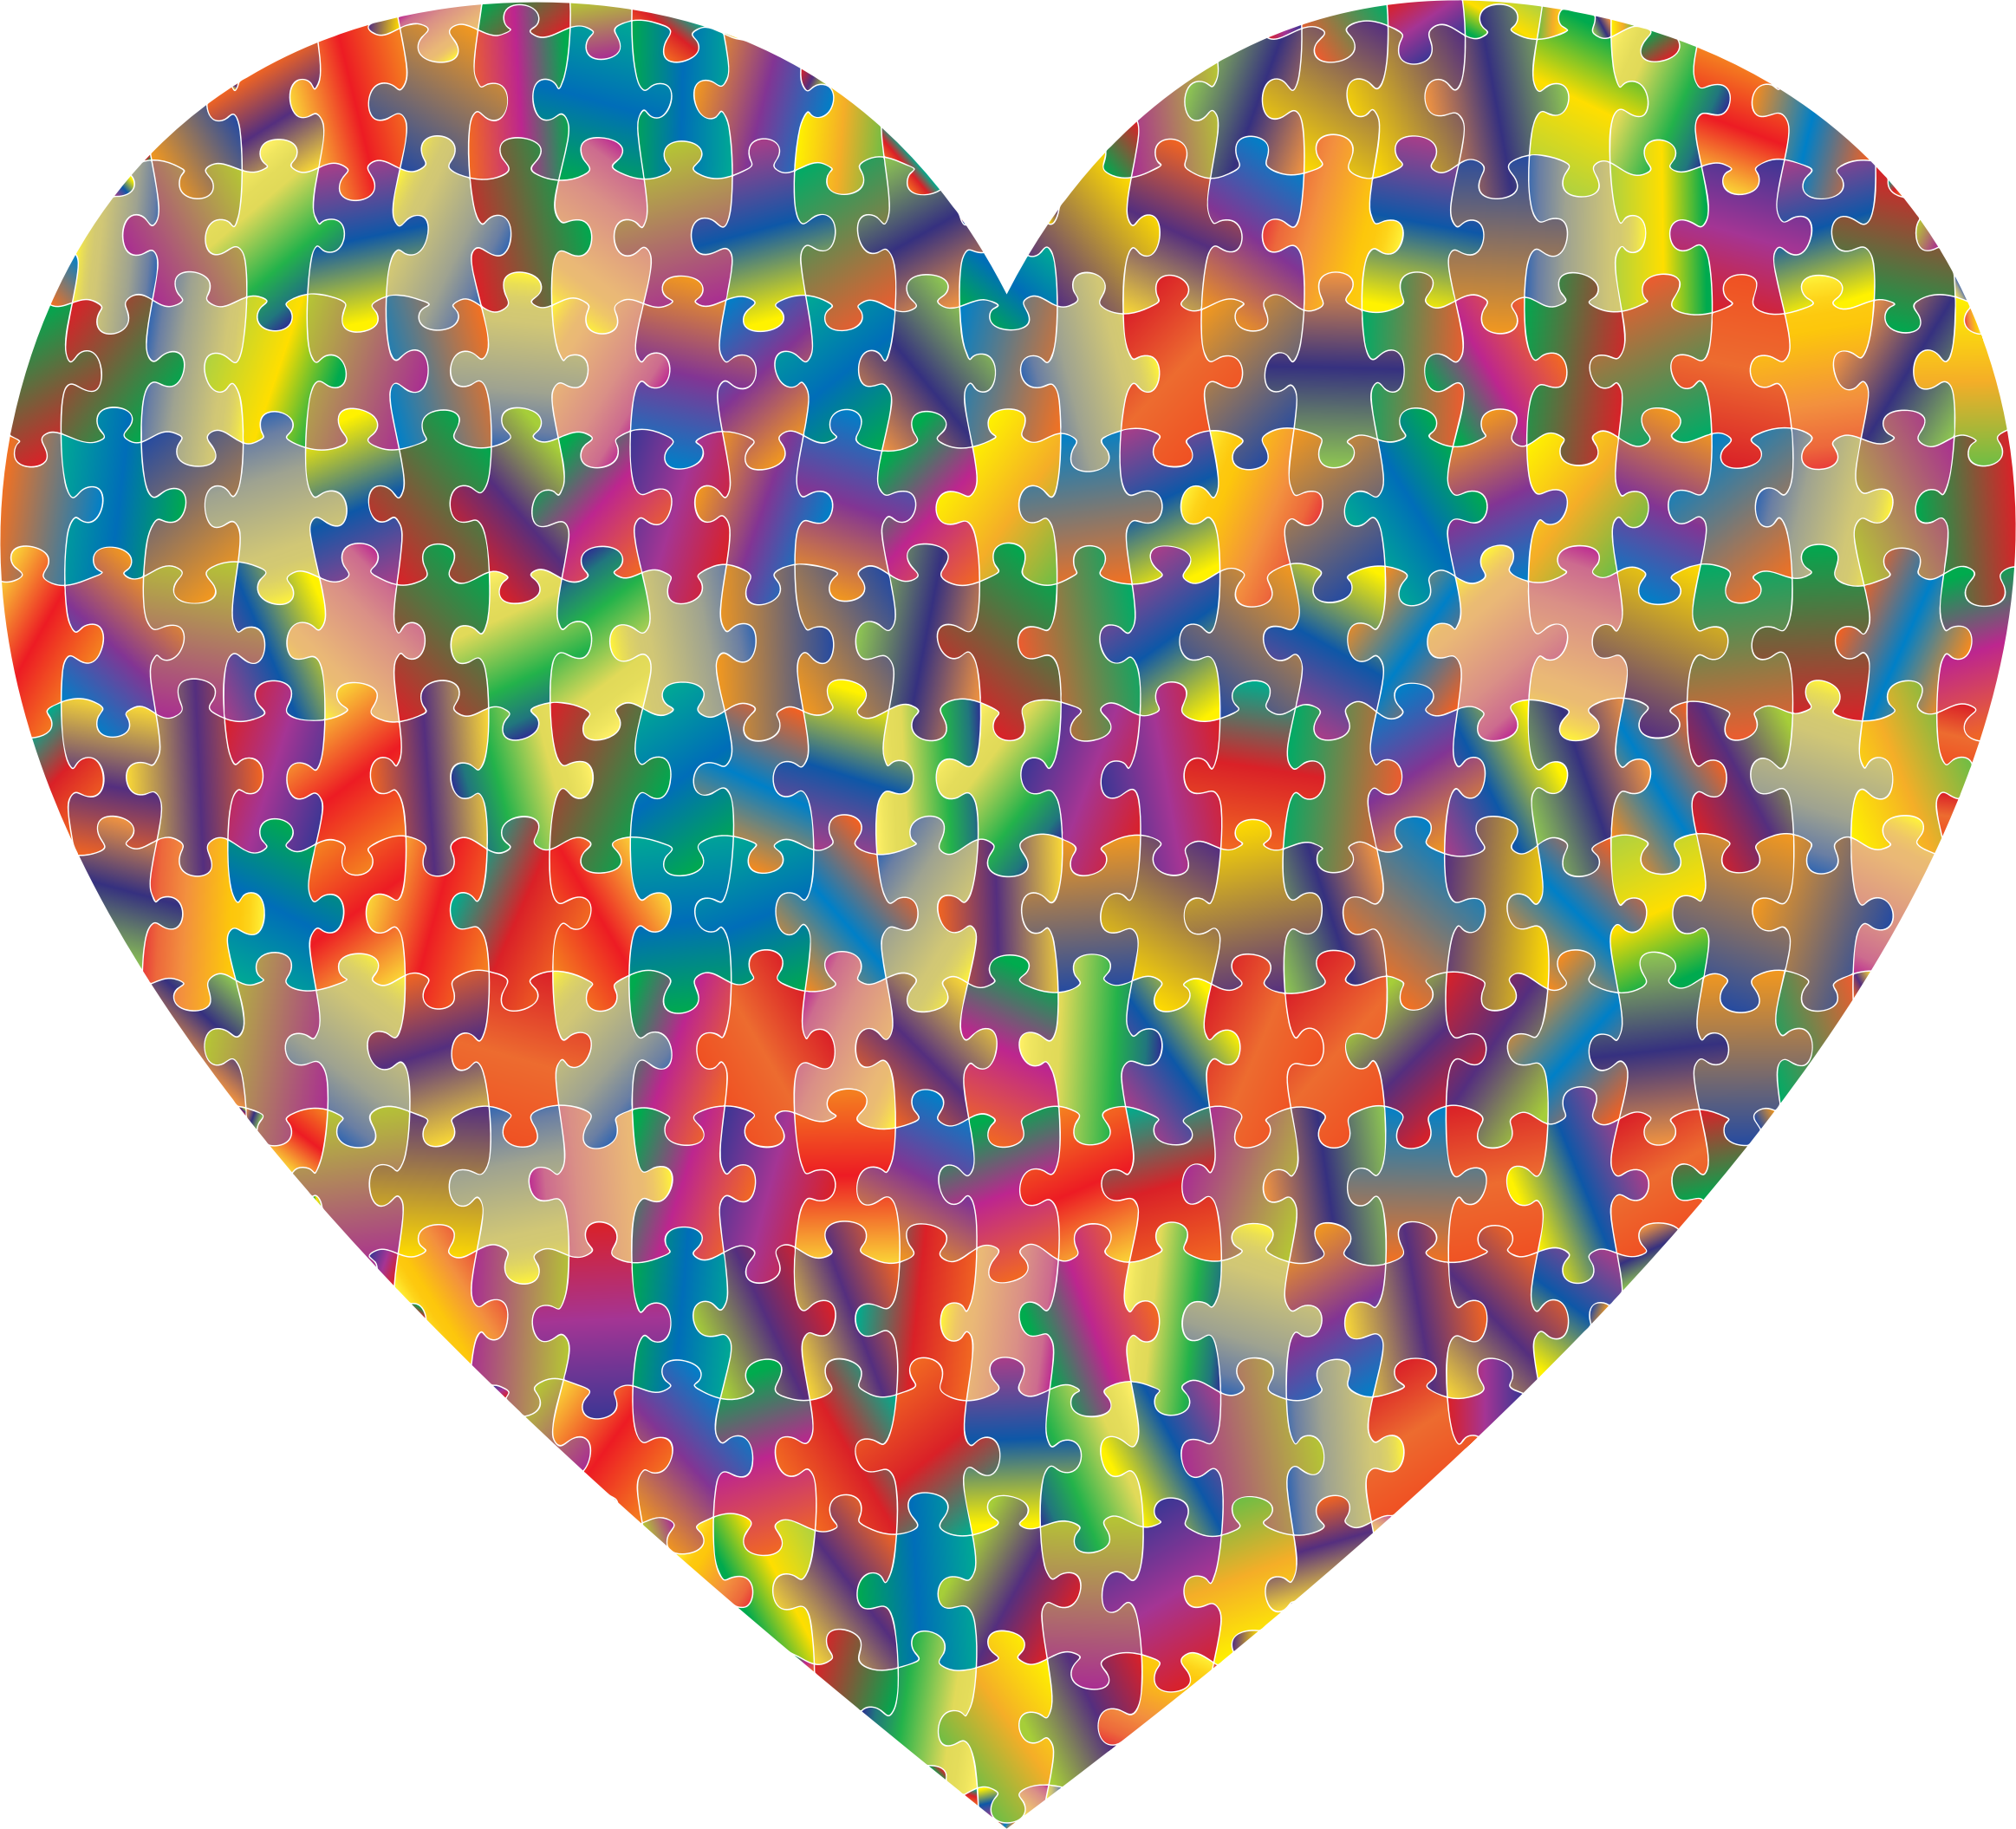 Colorful Puzzle Heart 5 by GDJ